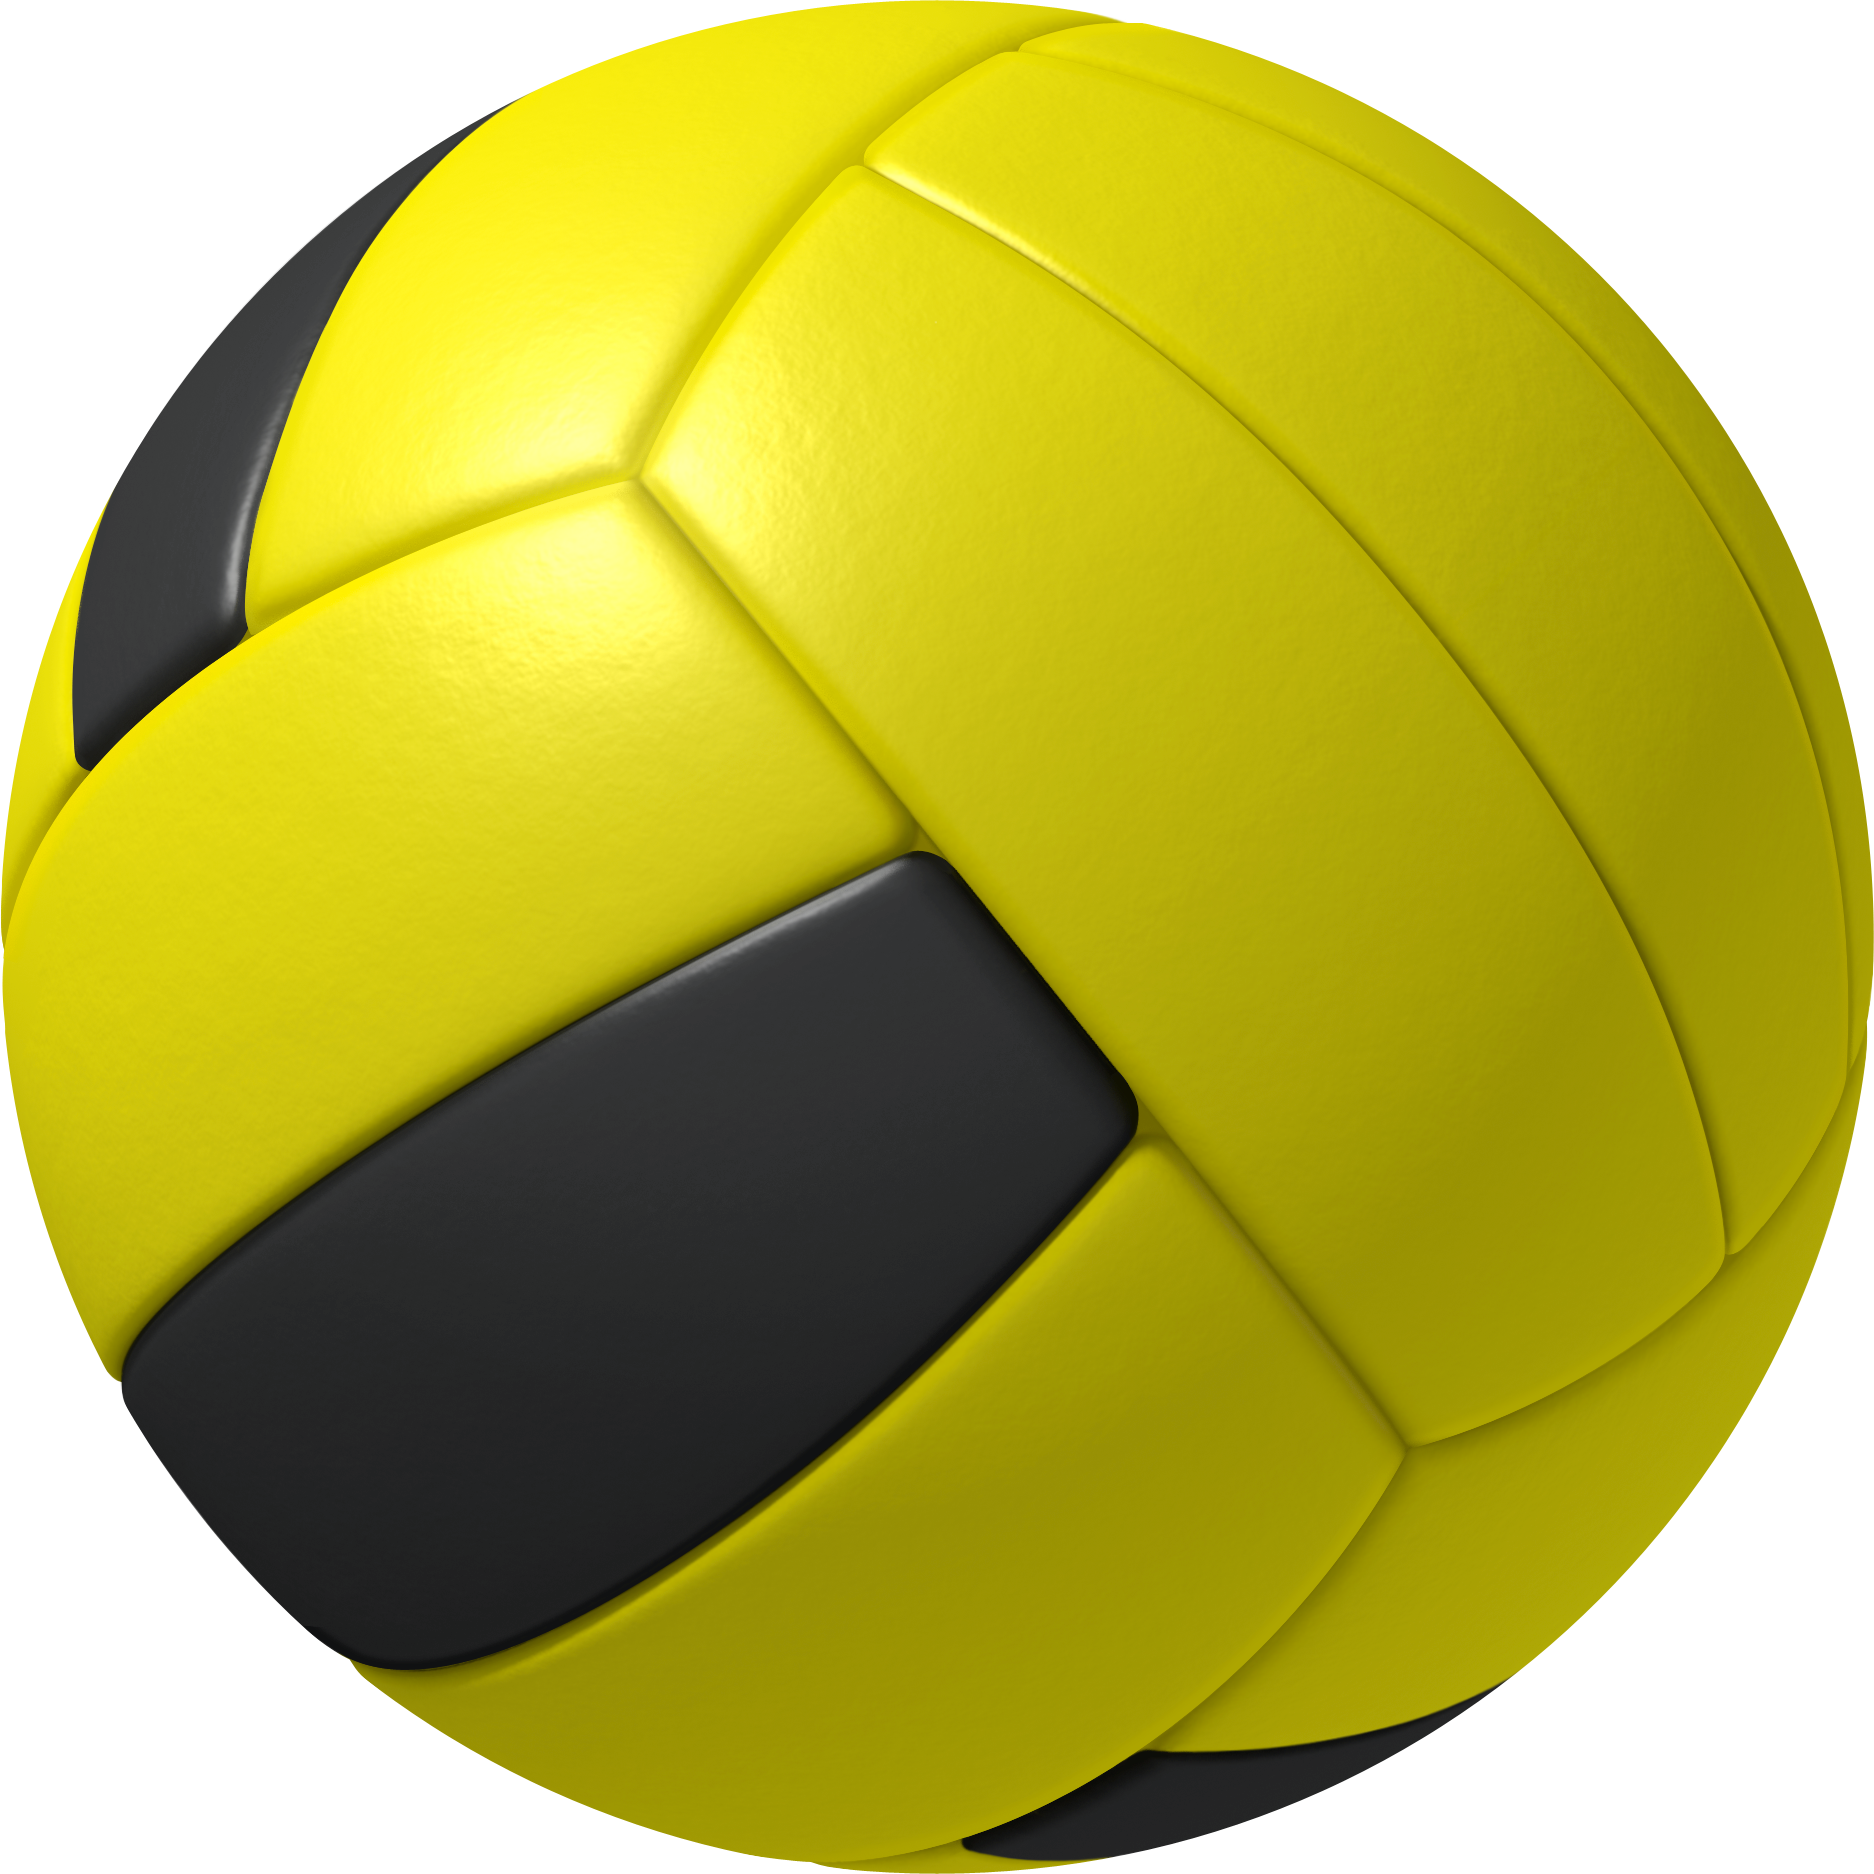 Volleyball .png. Png images free download